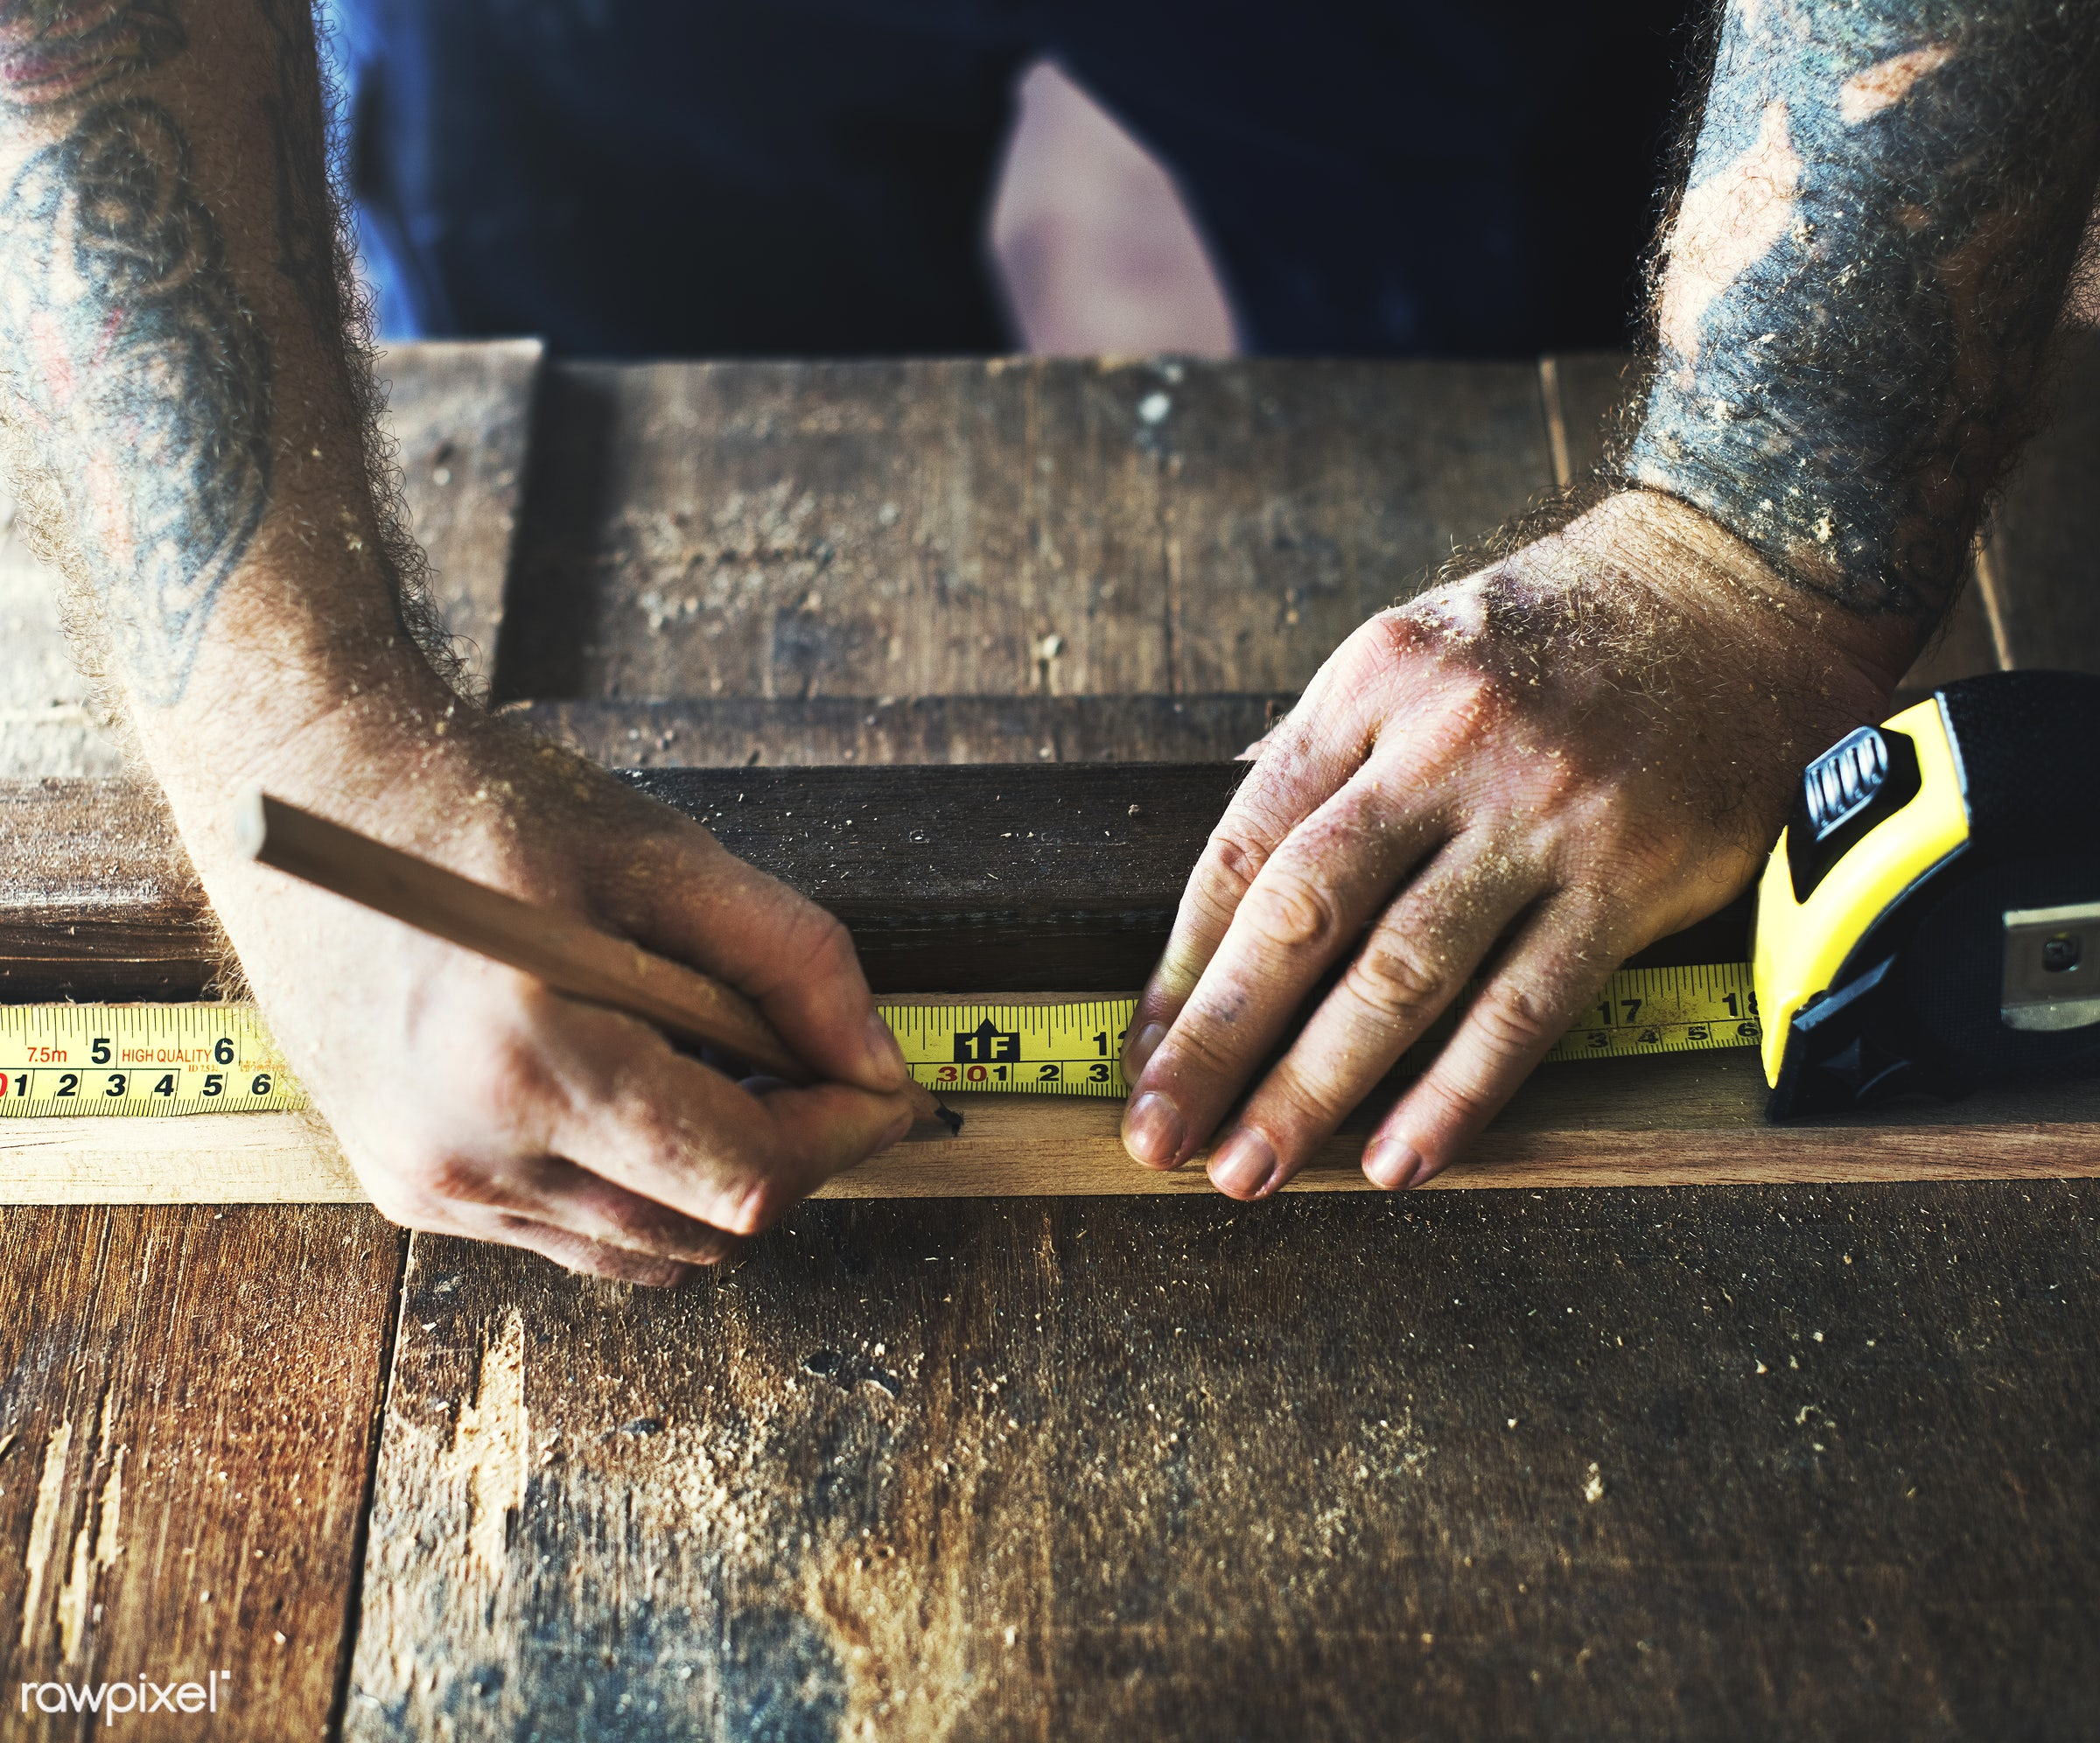 craft, wood, carpentry, tool, plank, equipment, diy, carpenter, handyman, craftsman, worker, repair, tattoo, industry,...